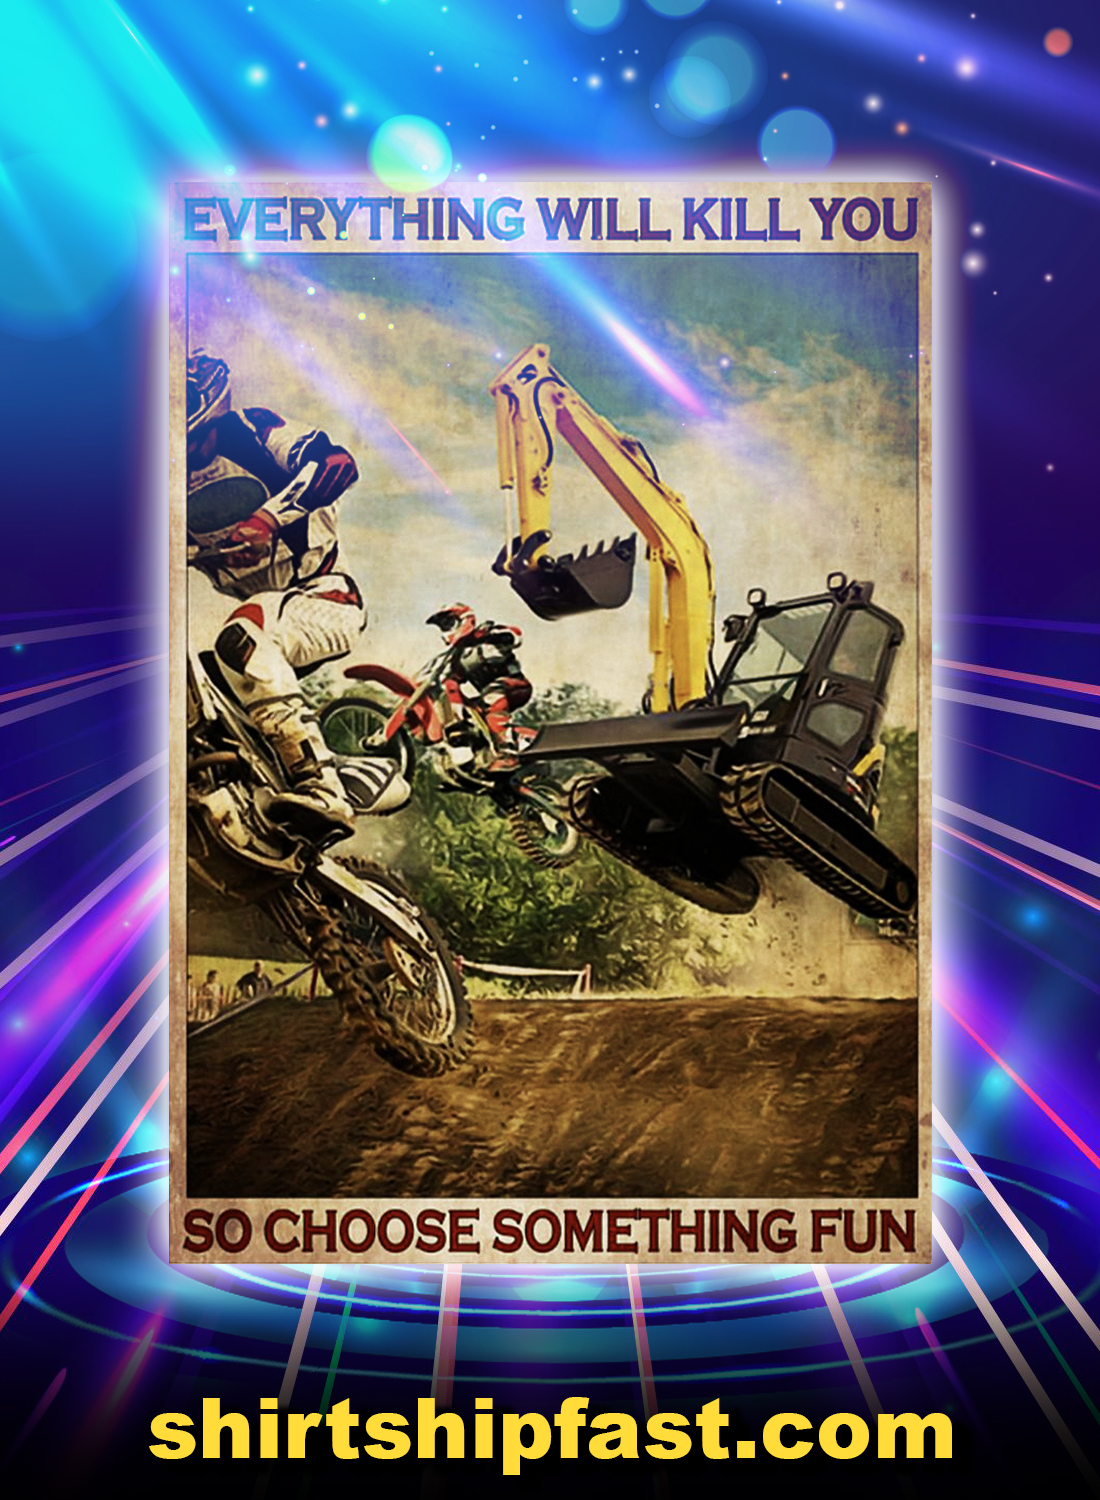 Motocross excavator everything will kill you so choose something fun poster